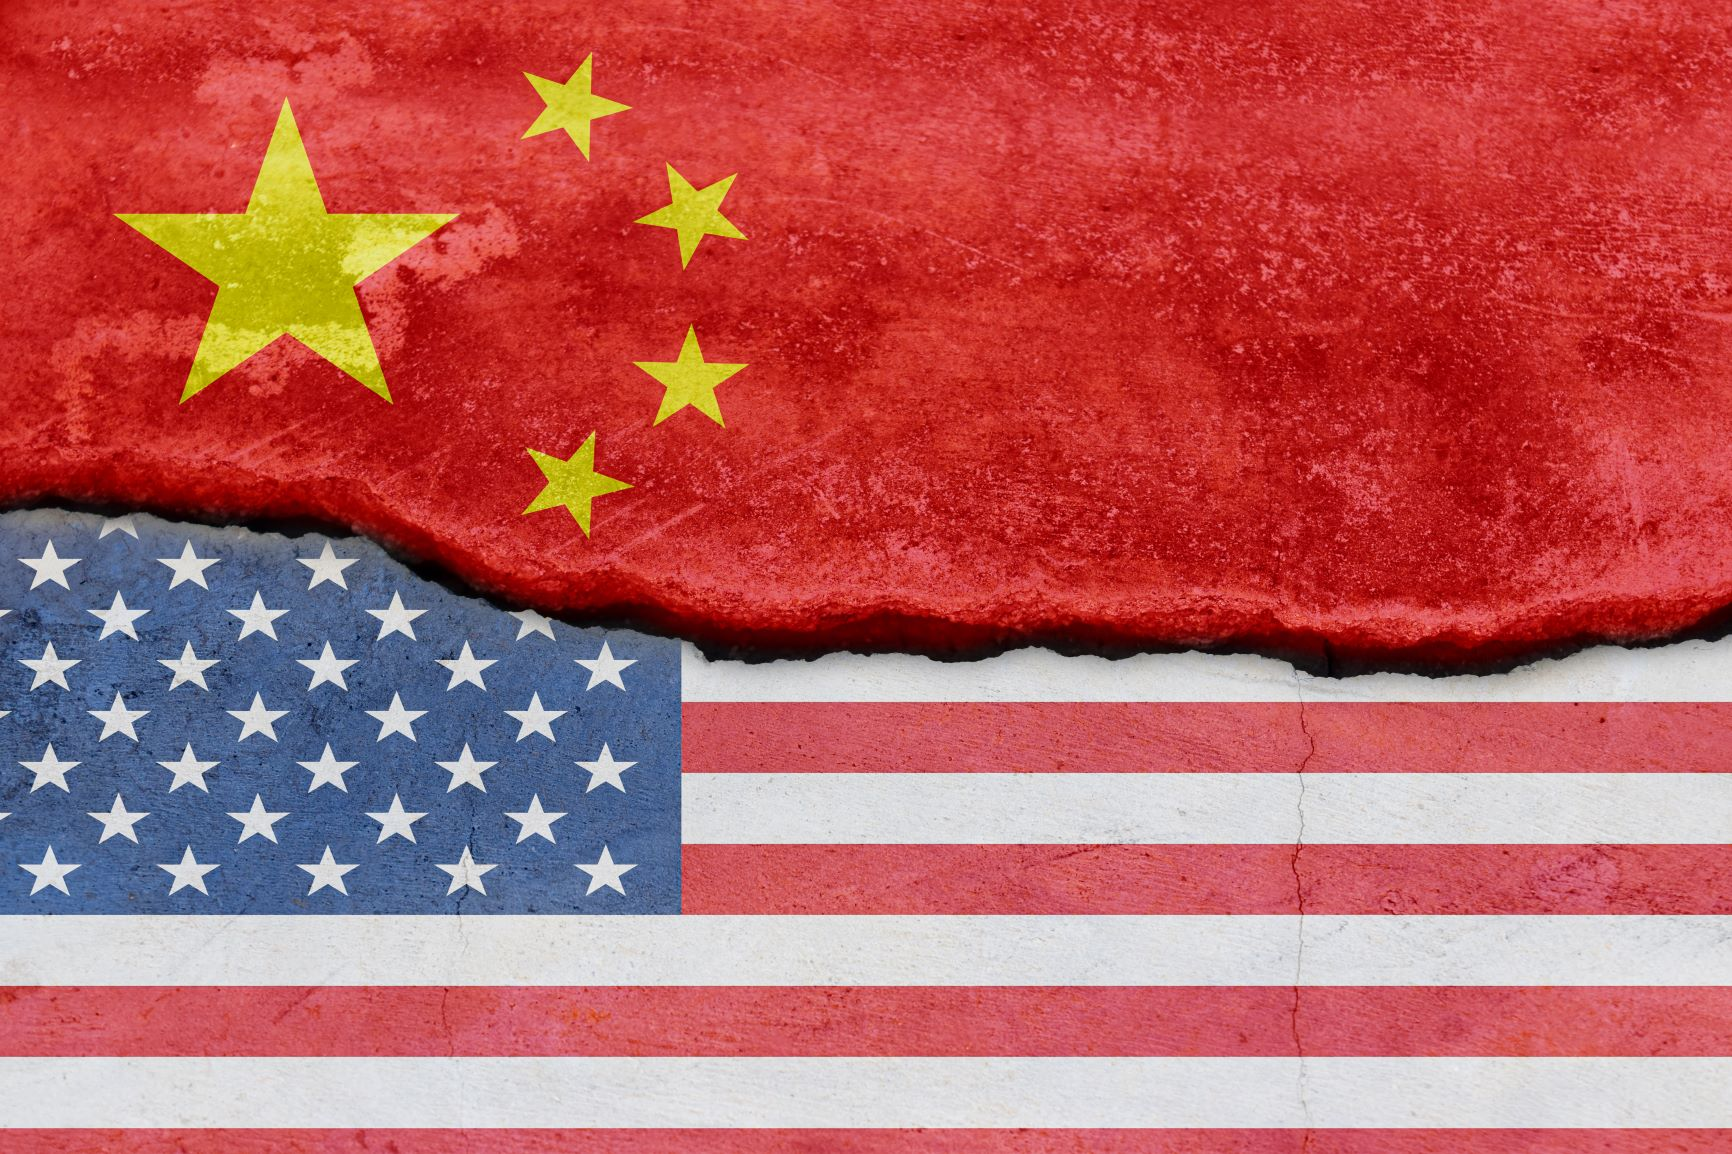 20 years after 9/11, War on Terror gives way to focus on China: EM implications